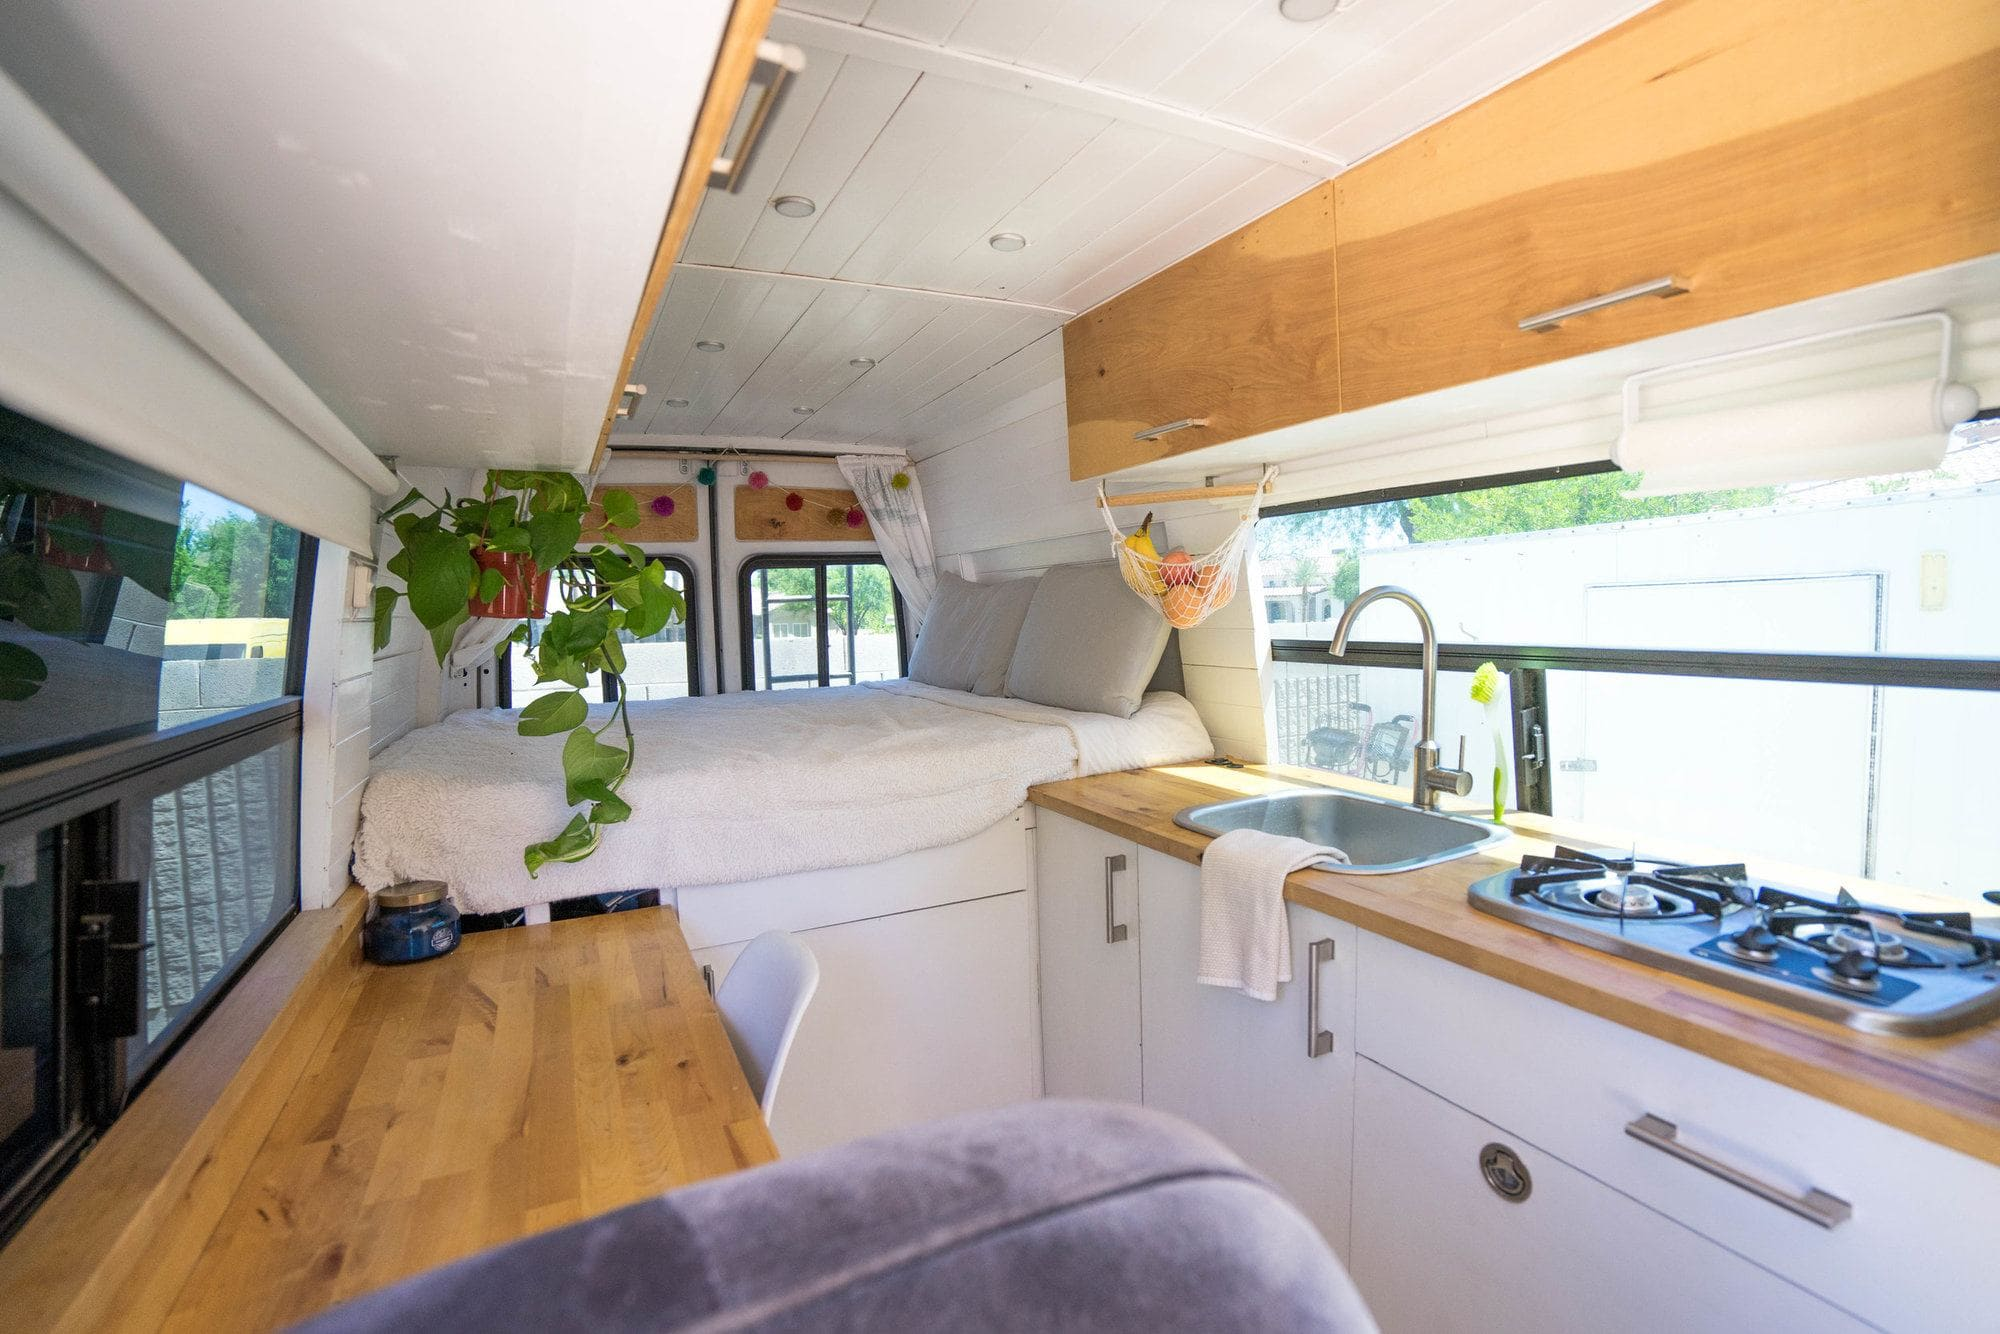 Sprinter Van Life Interview: Our Home on Wheels Tour